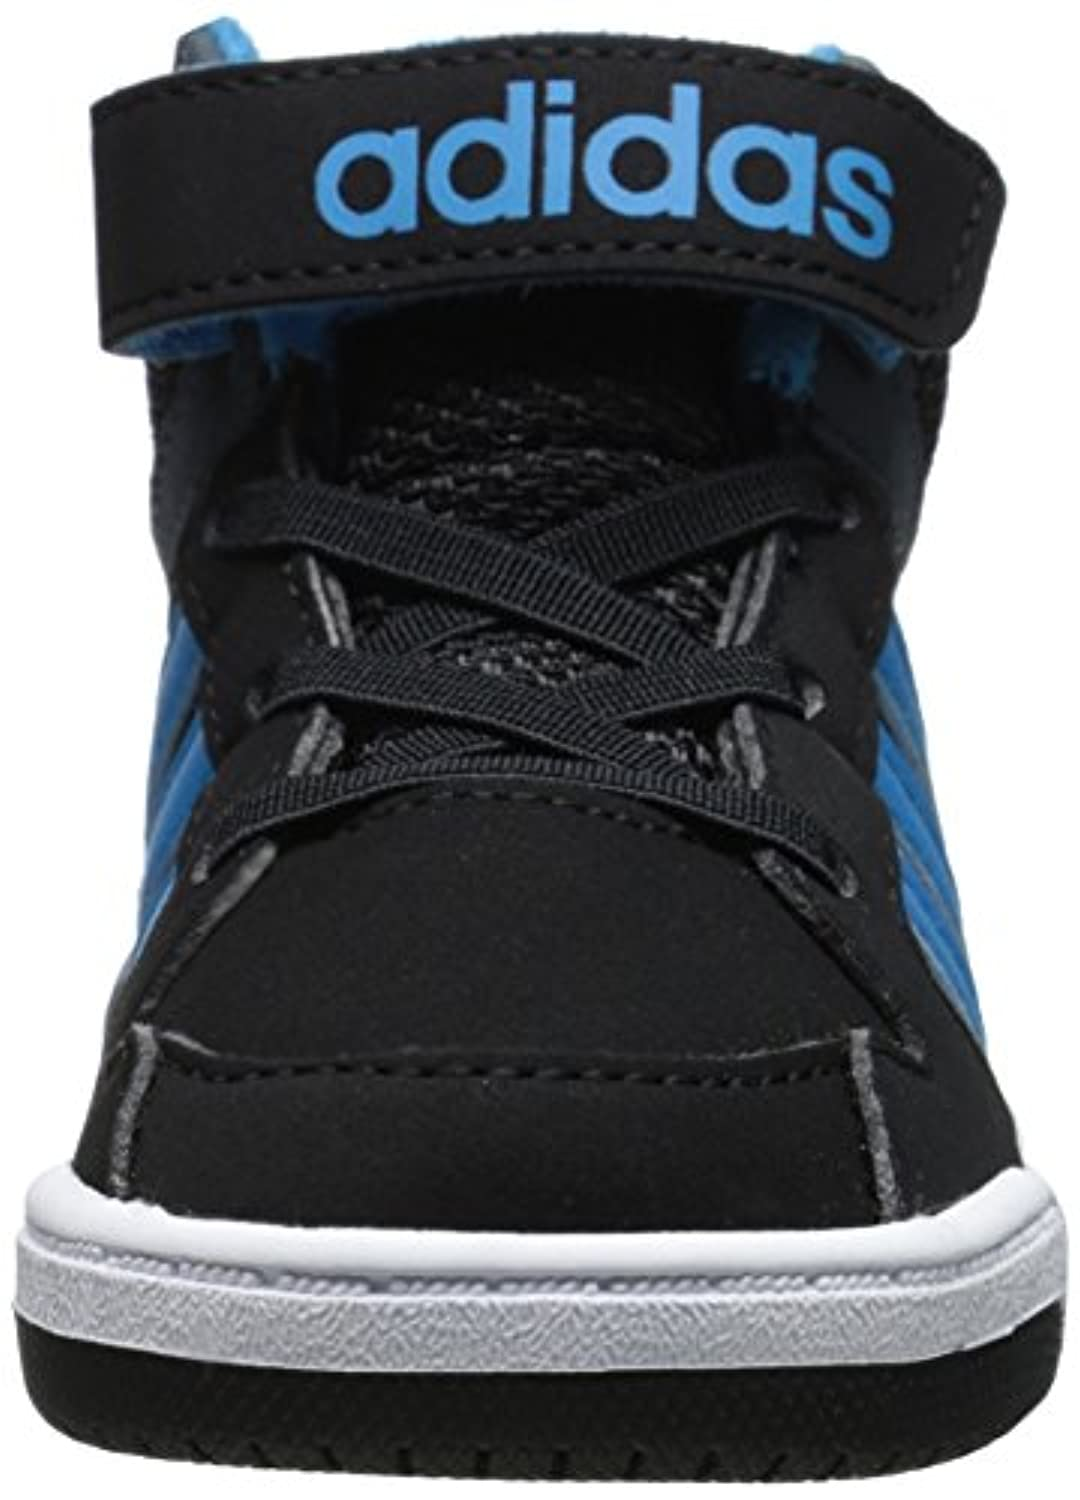 6fda9231d1983 adidas NEO BB9TIS Mid INF Shoe (Toddler), Black/Solar Blue/Bold Onix Grey,  5 M US Toddler | $89.95 - Buy today!